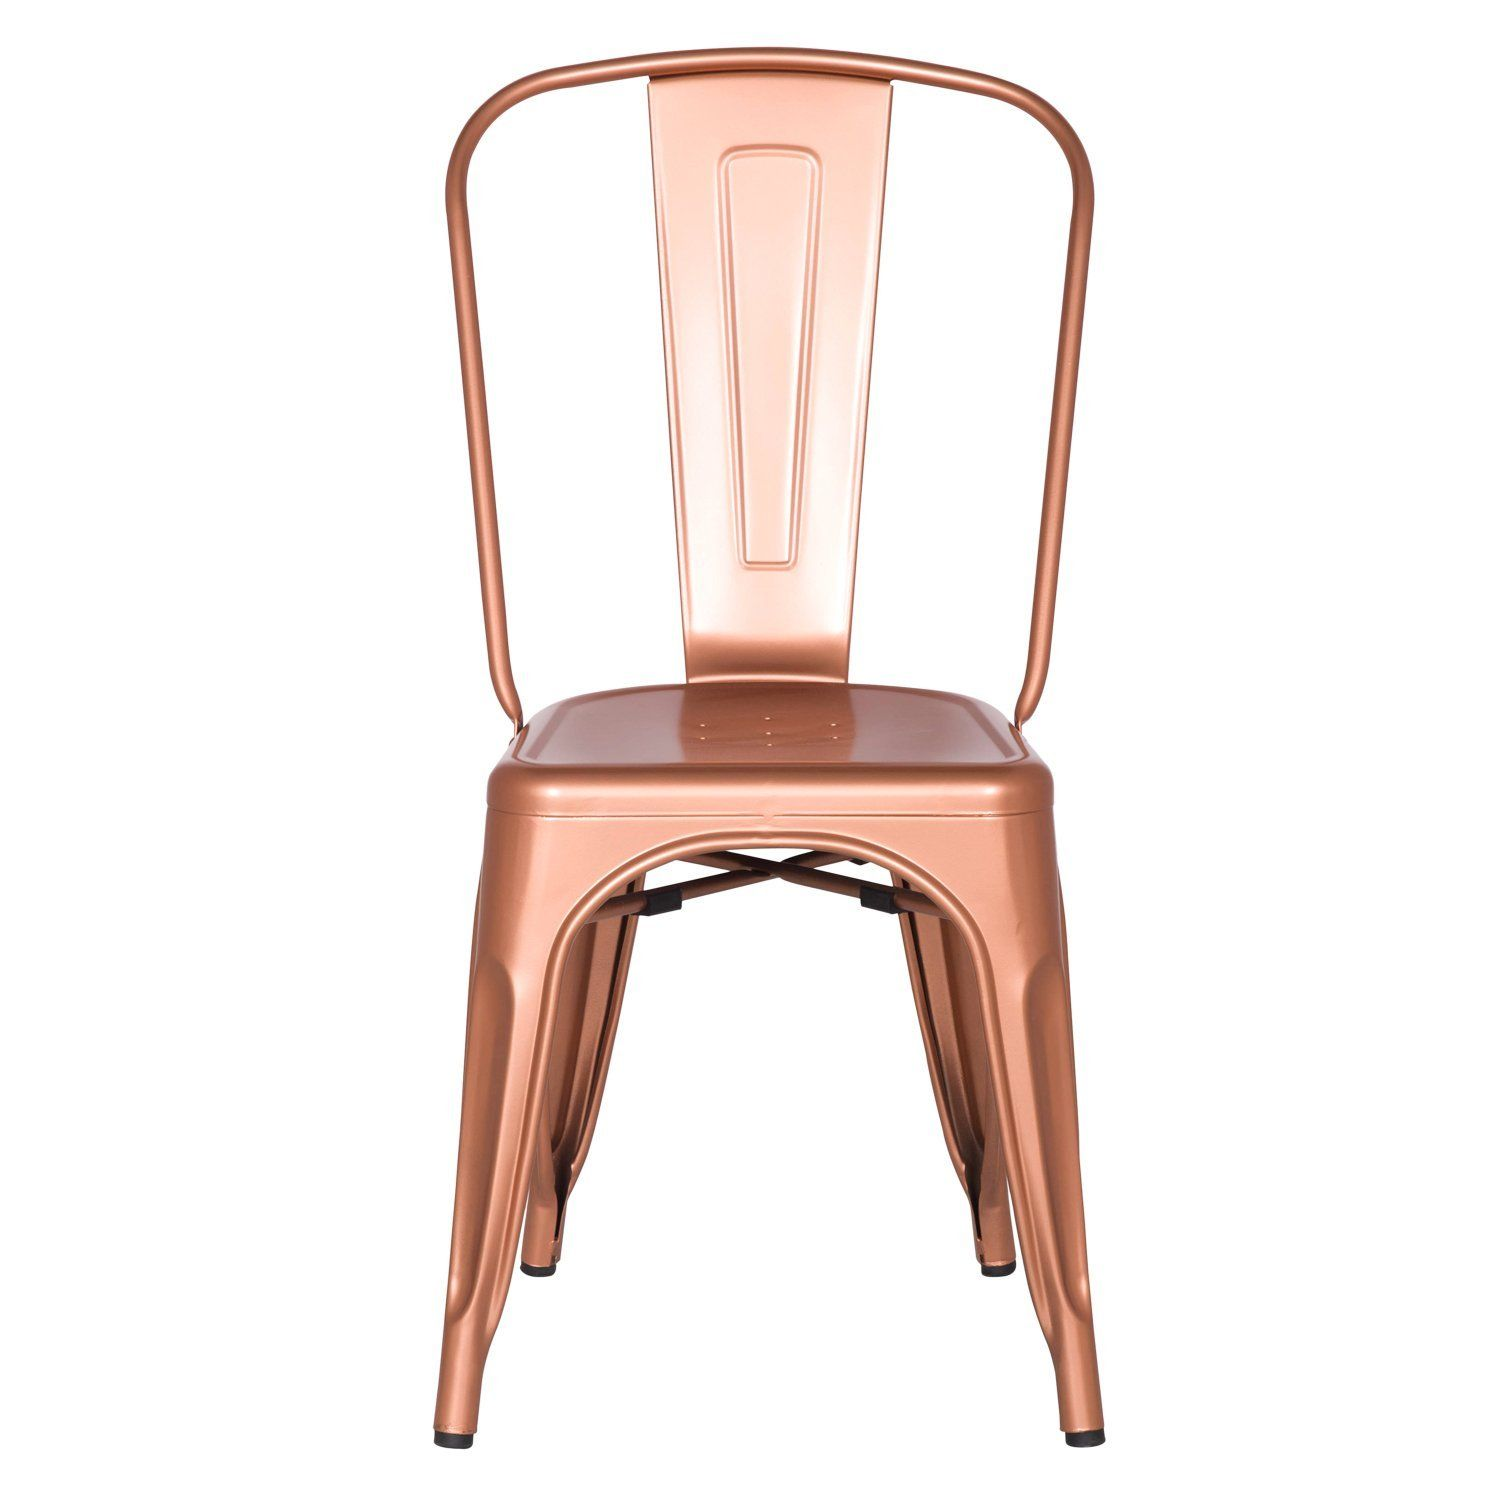 Adeco metal stackable industrial chic dining bistro cafe side chairs - Amazon Com Adeco Metal Stackable Industrial Chic Dining Bistro Cafe Side Chairs Copper